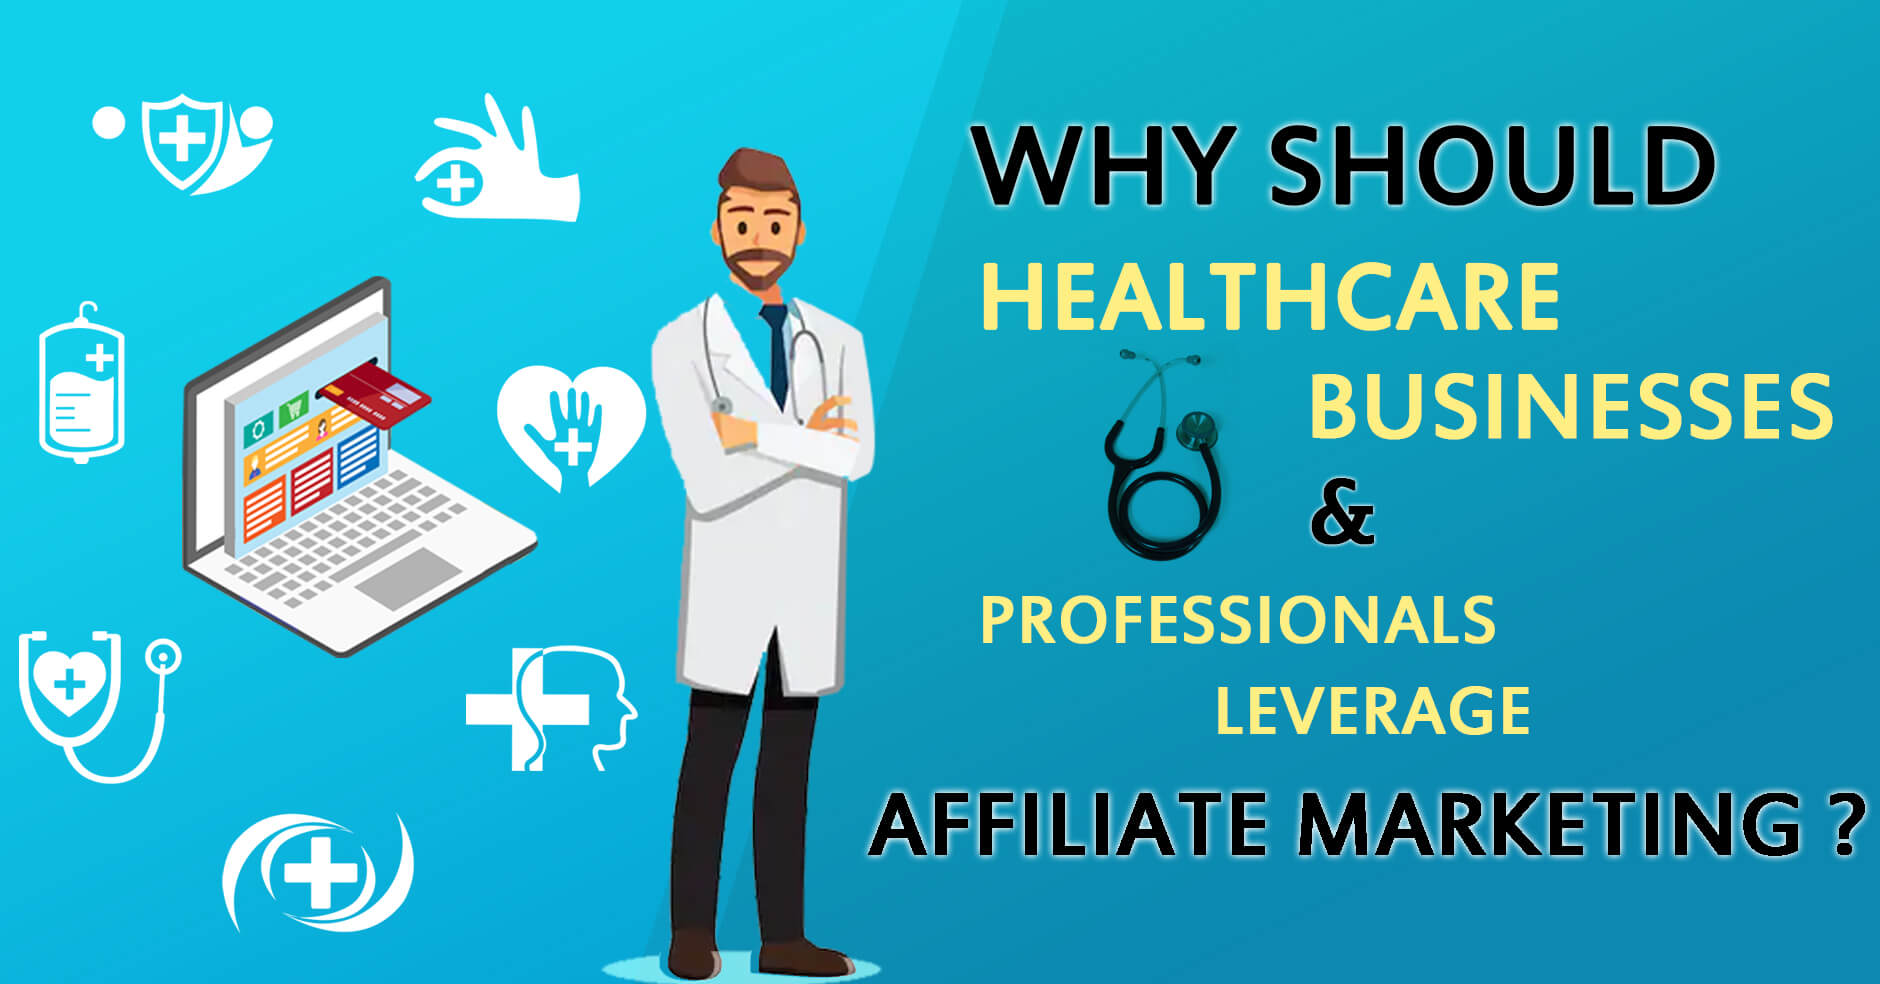 Why Should Healthcare Businesses and Professionals Leverage Affiliate Marketing?